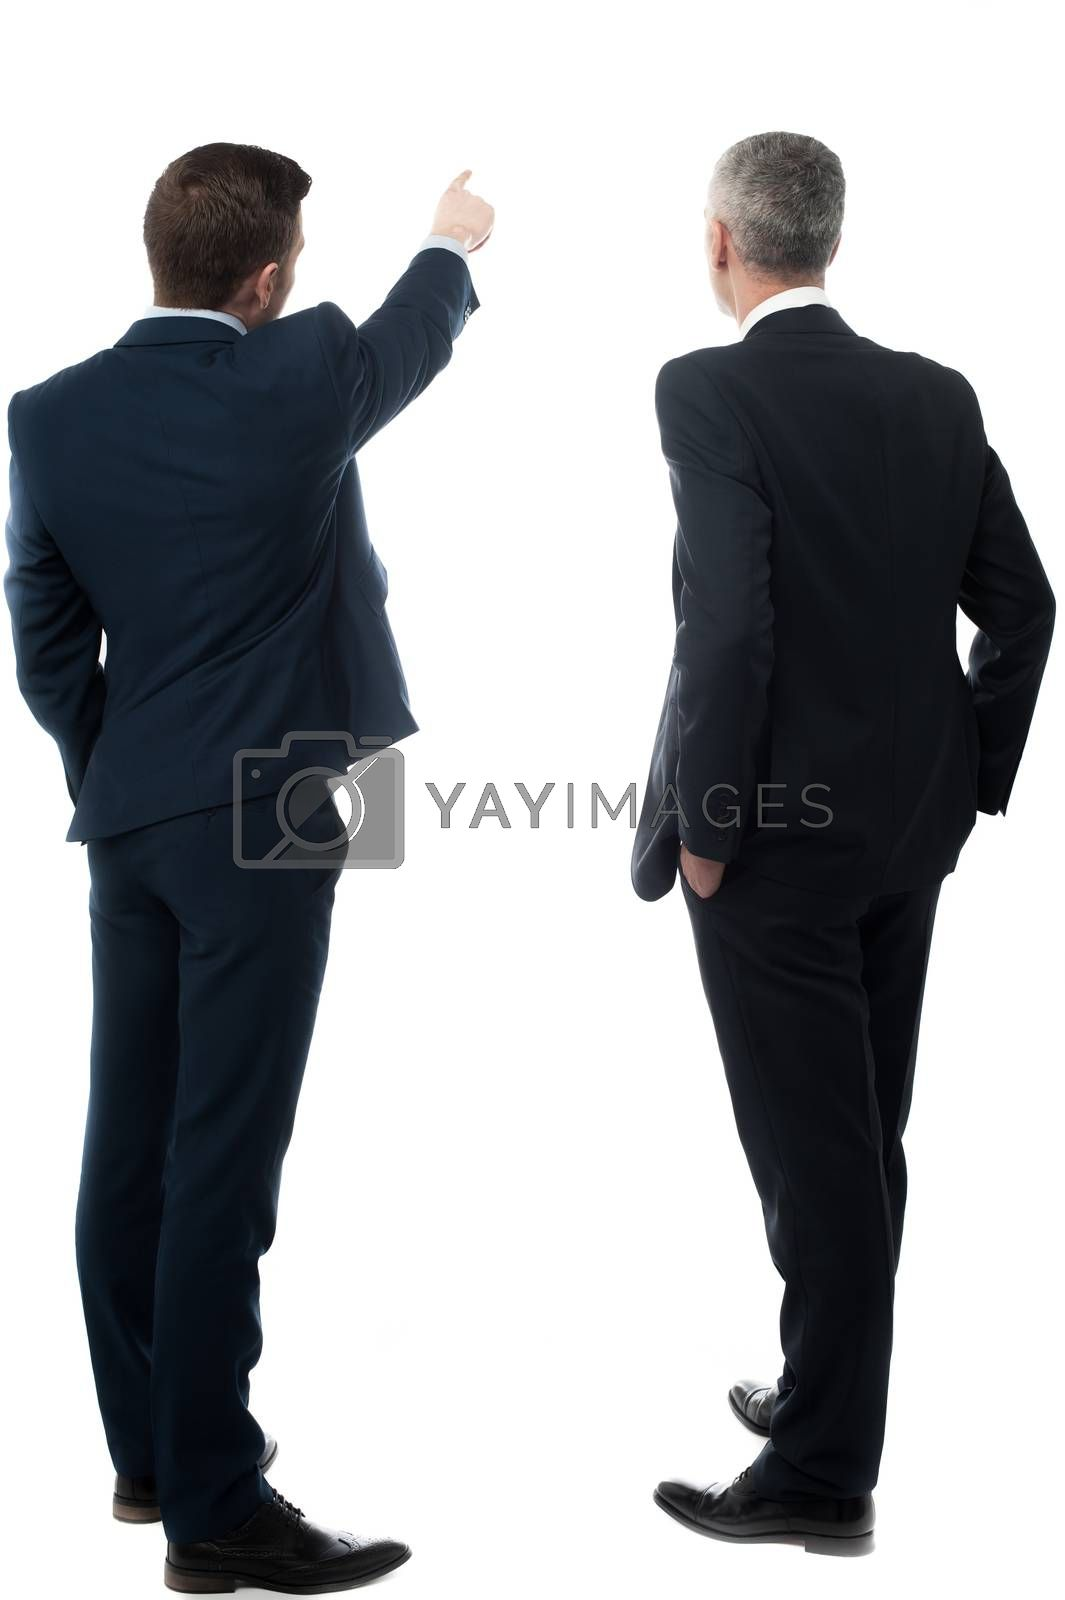 Rear-view image of two businessmen by stockyimages